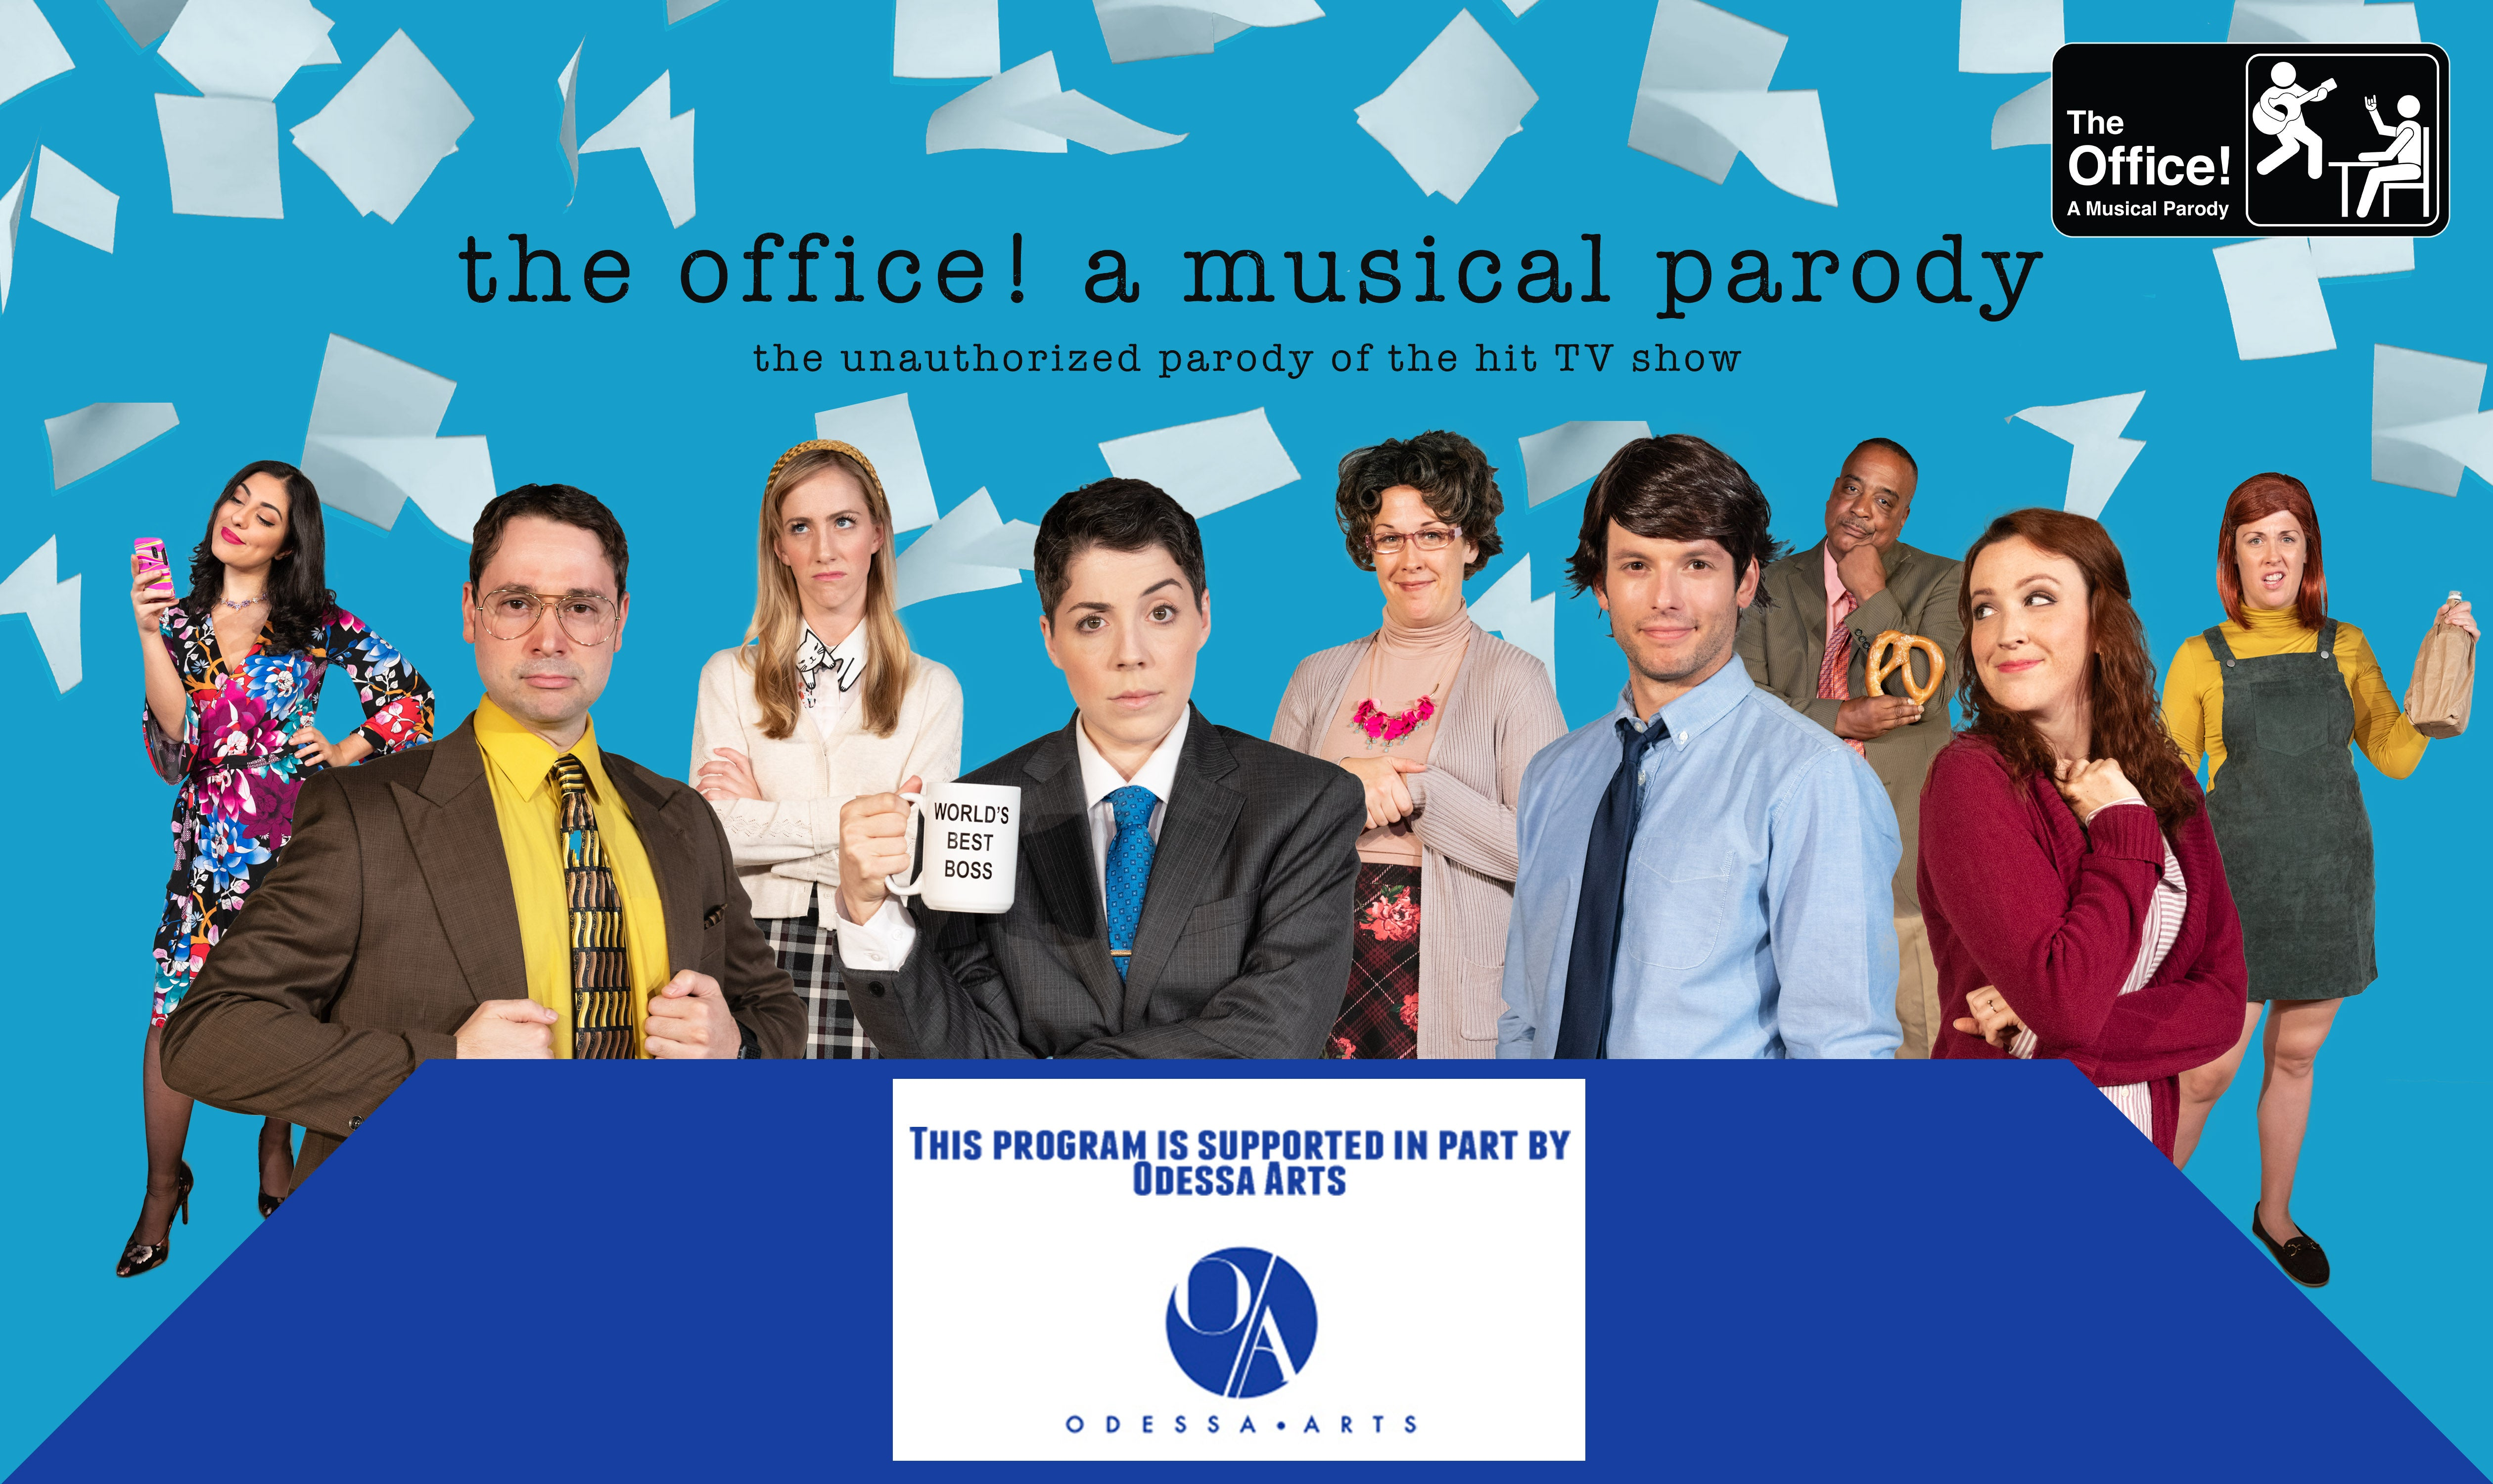 POSTPONED - The Office! A Musical Parody